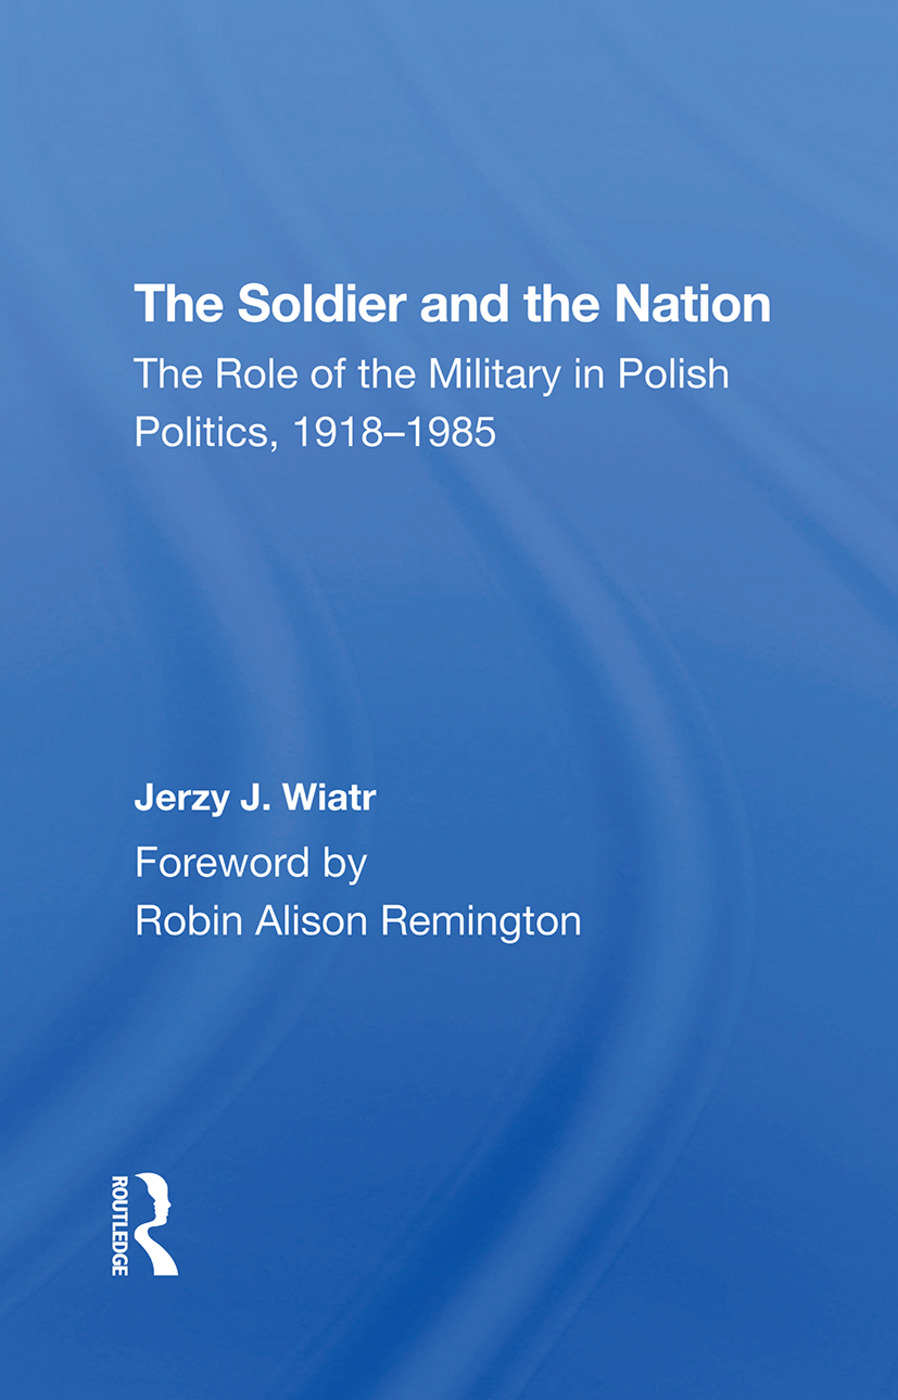 The Role of the Military in a Crisis Situation: General Jaruzelski's Government in 1981